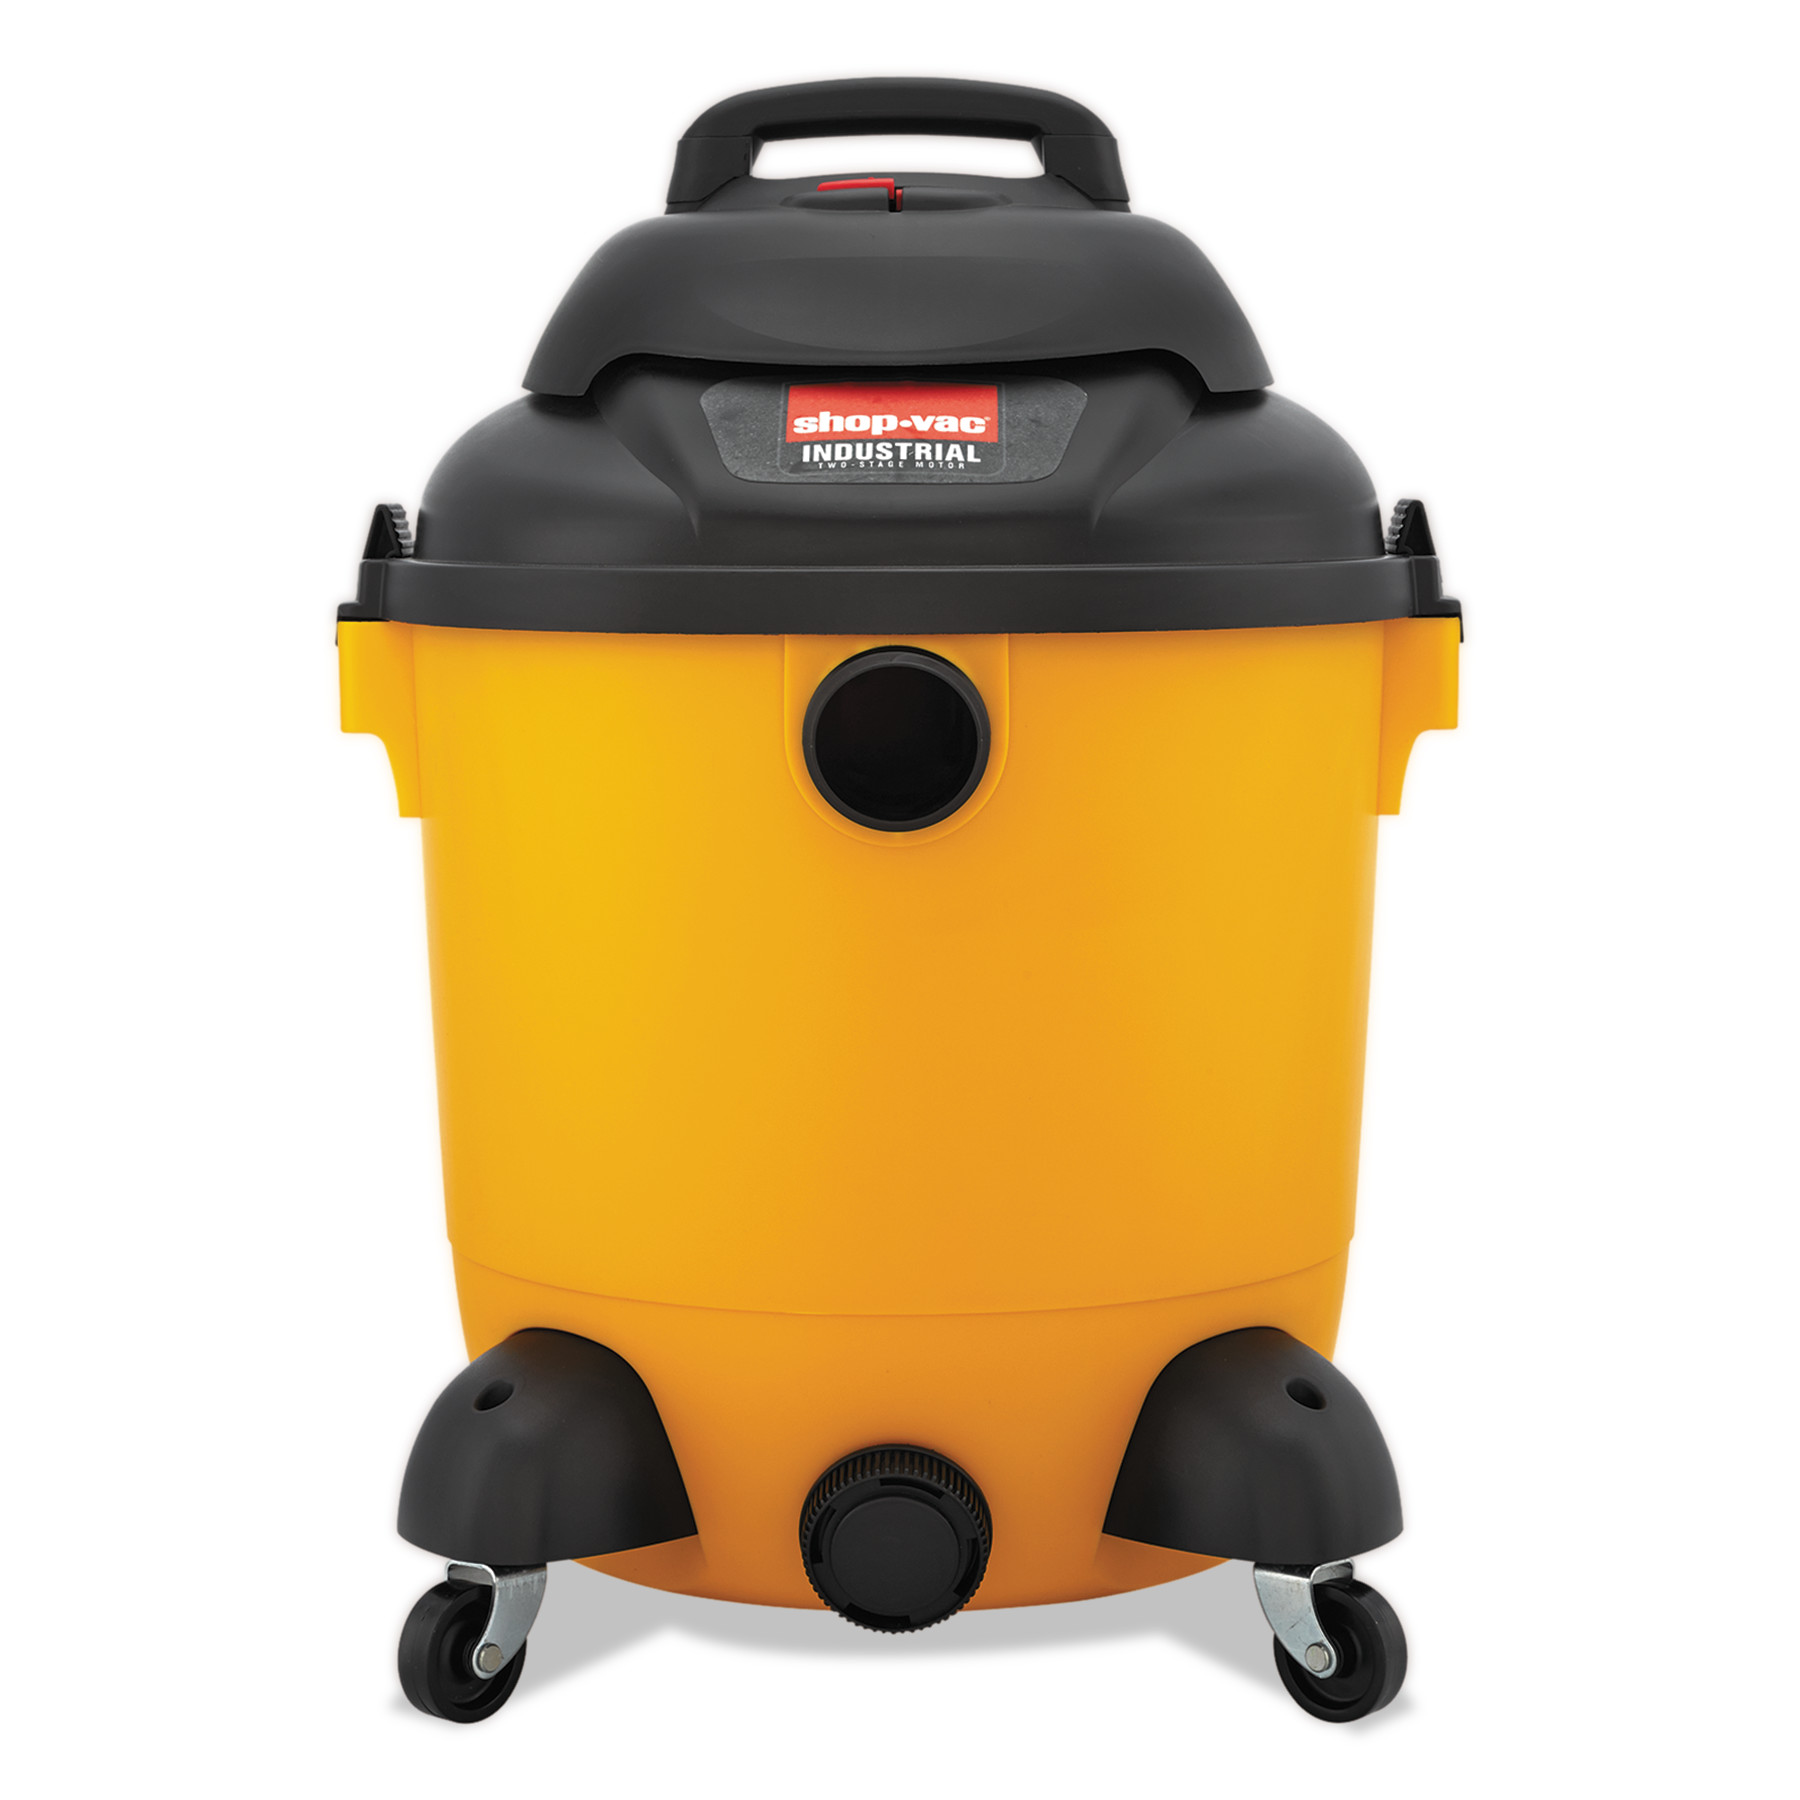 Shop-Vac Right Stuff Wet/Dry Vacuum, 9.5 Amps, 32lbs, Yellow/Black